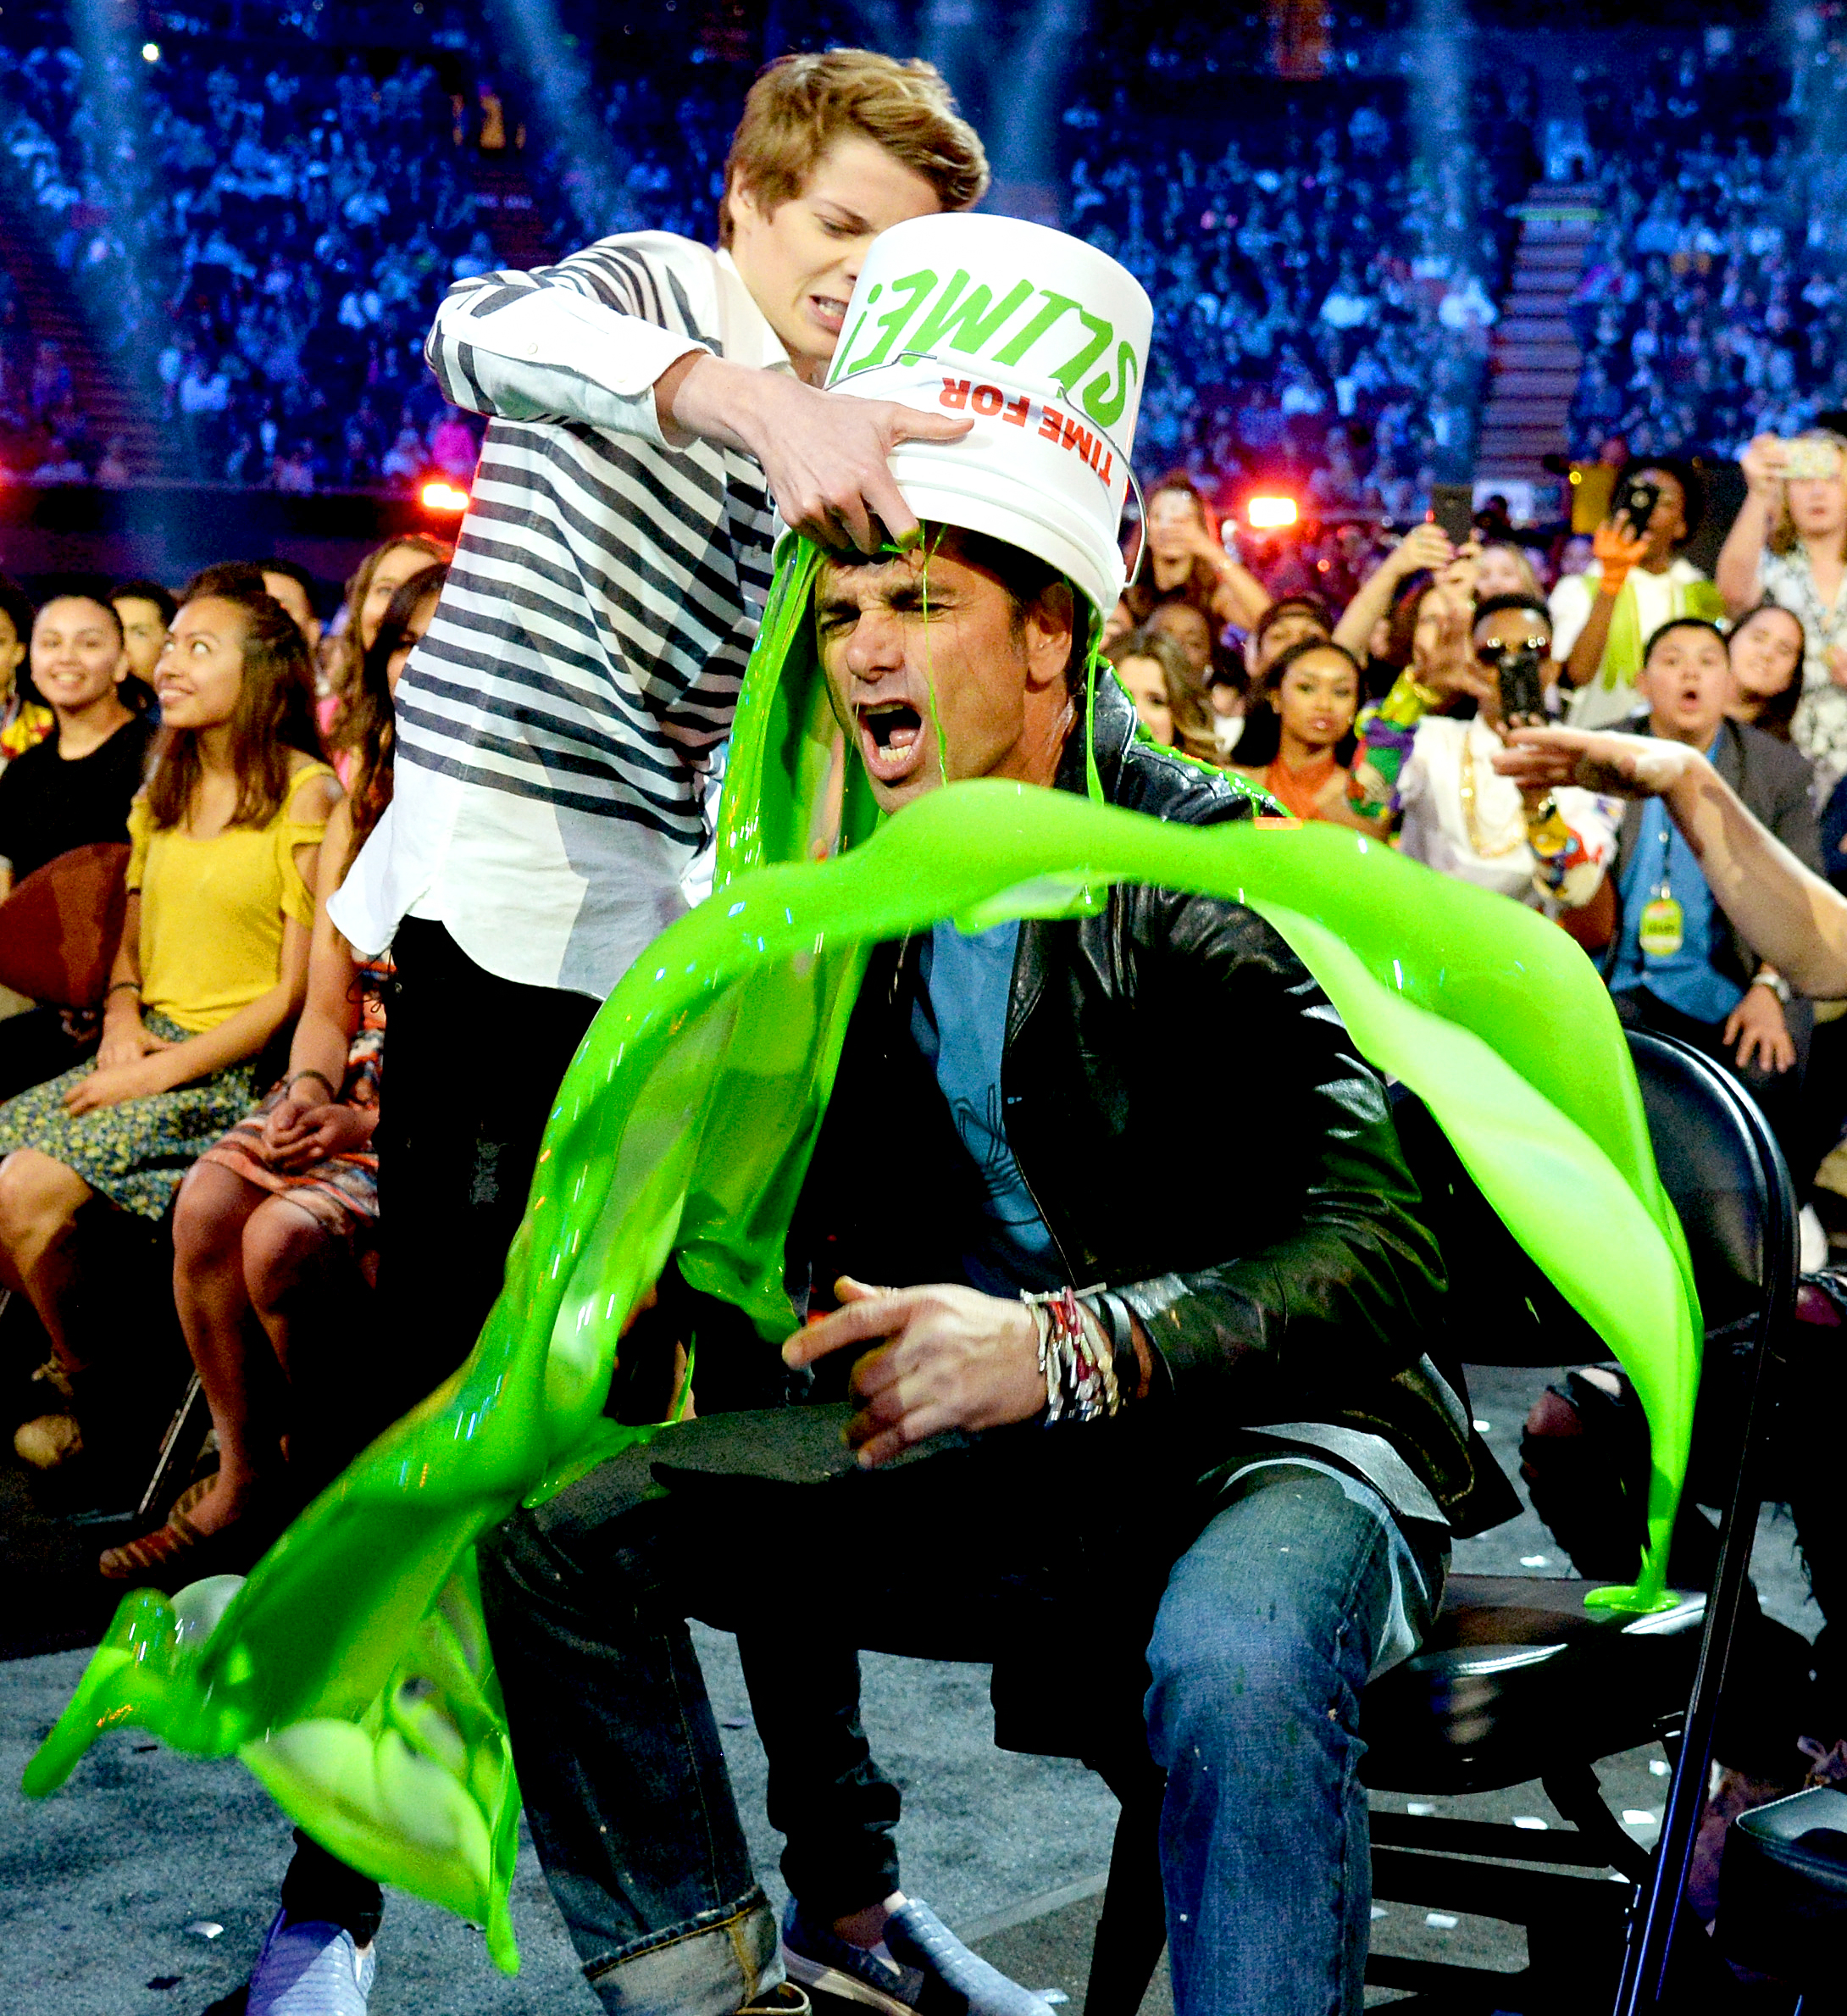 Jace Norman and John Stamos - Jace Norman came up from behind to cover John Stamos with a bucket of green goo at the awards show on March 12, 2016, but the Fuller House star got him back — by burying his slime-covered head in Norman's shirt!